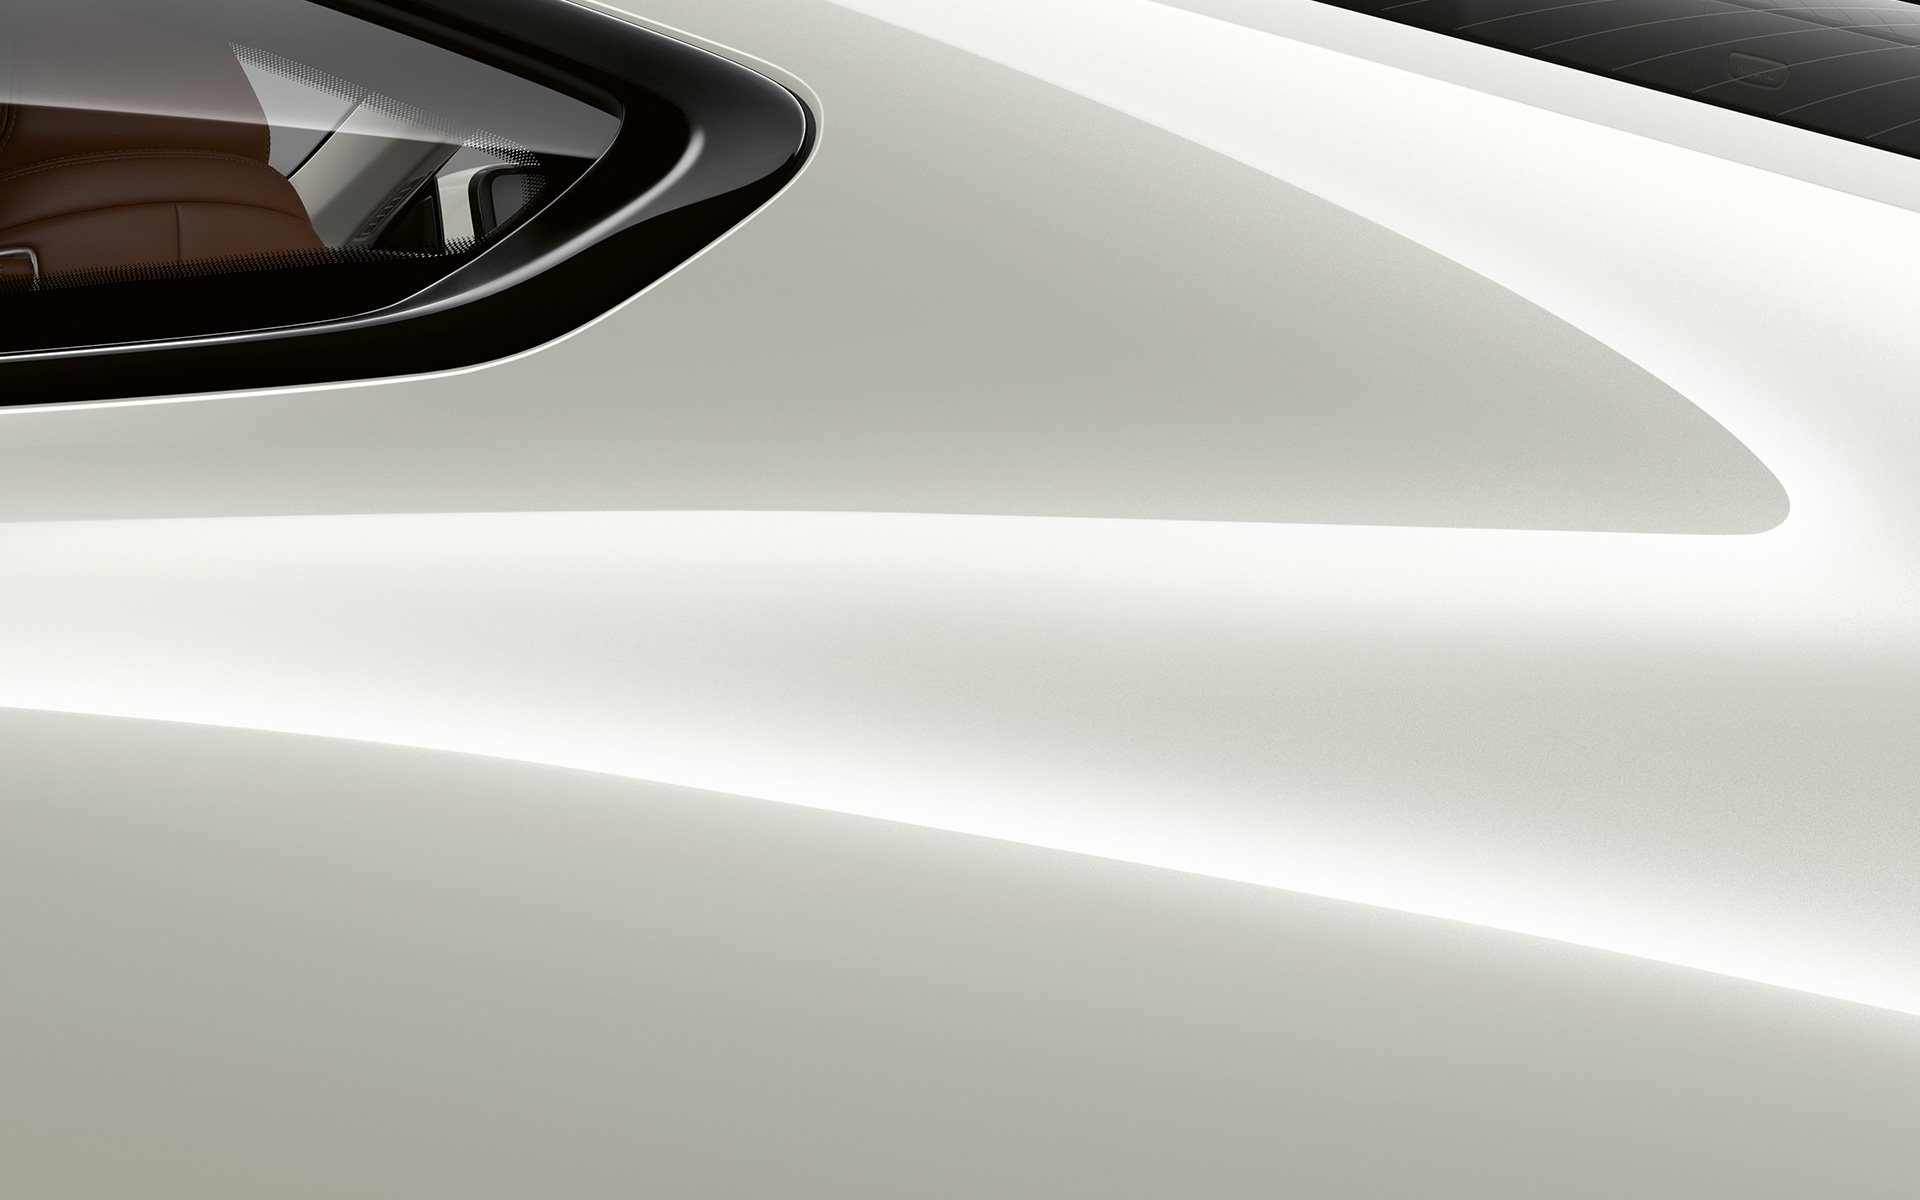 Close-up of the C pillar of the BMW 8 Series Coupé in Bluestone metallic.